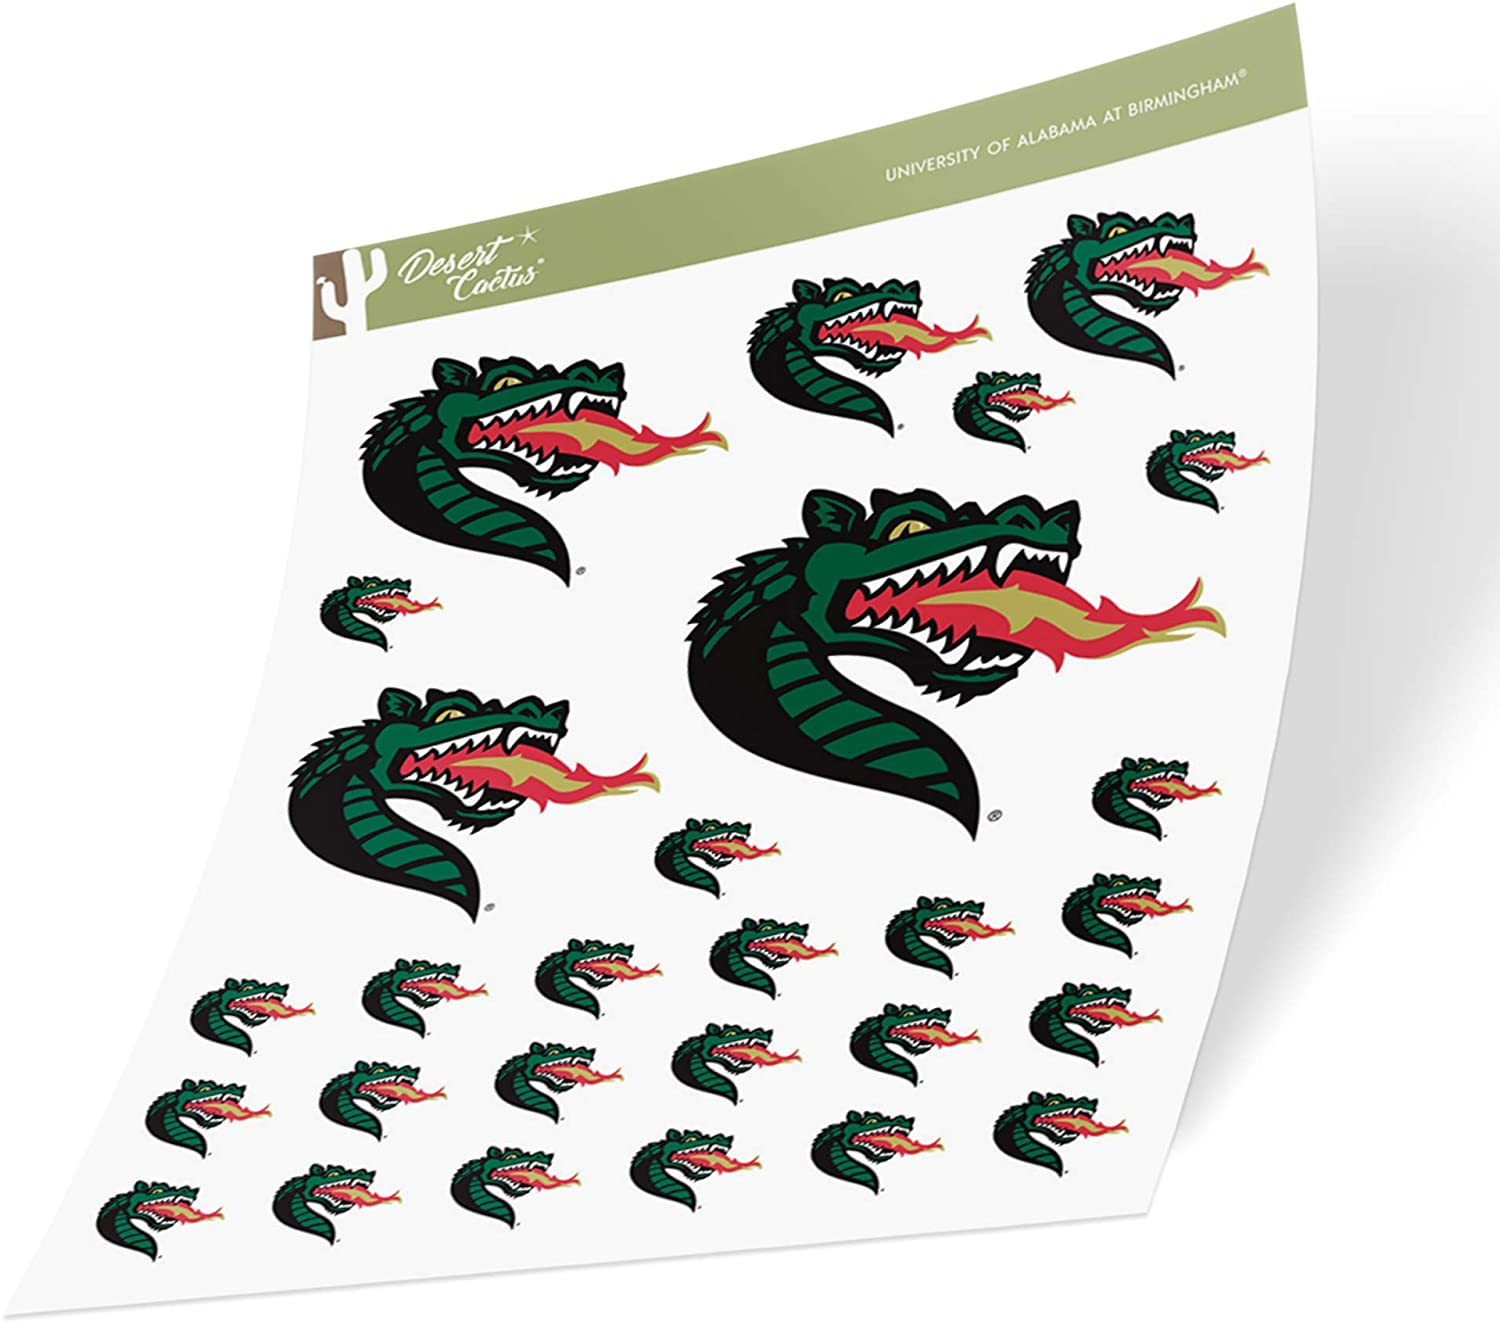 University of Alabama at Birmingham UAB Blazers NCAA Sticker Vinyl Decal Laptop Water Bottle Car Scrapbook (Sheet Type 3-1)